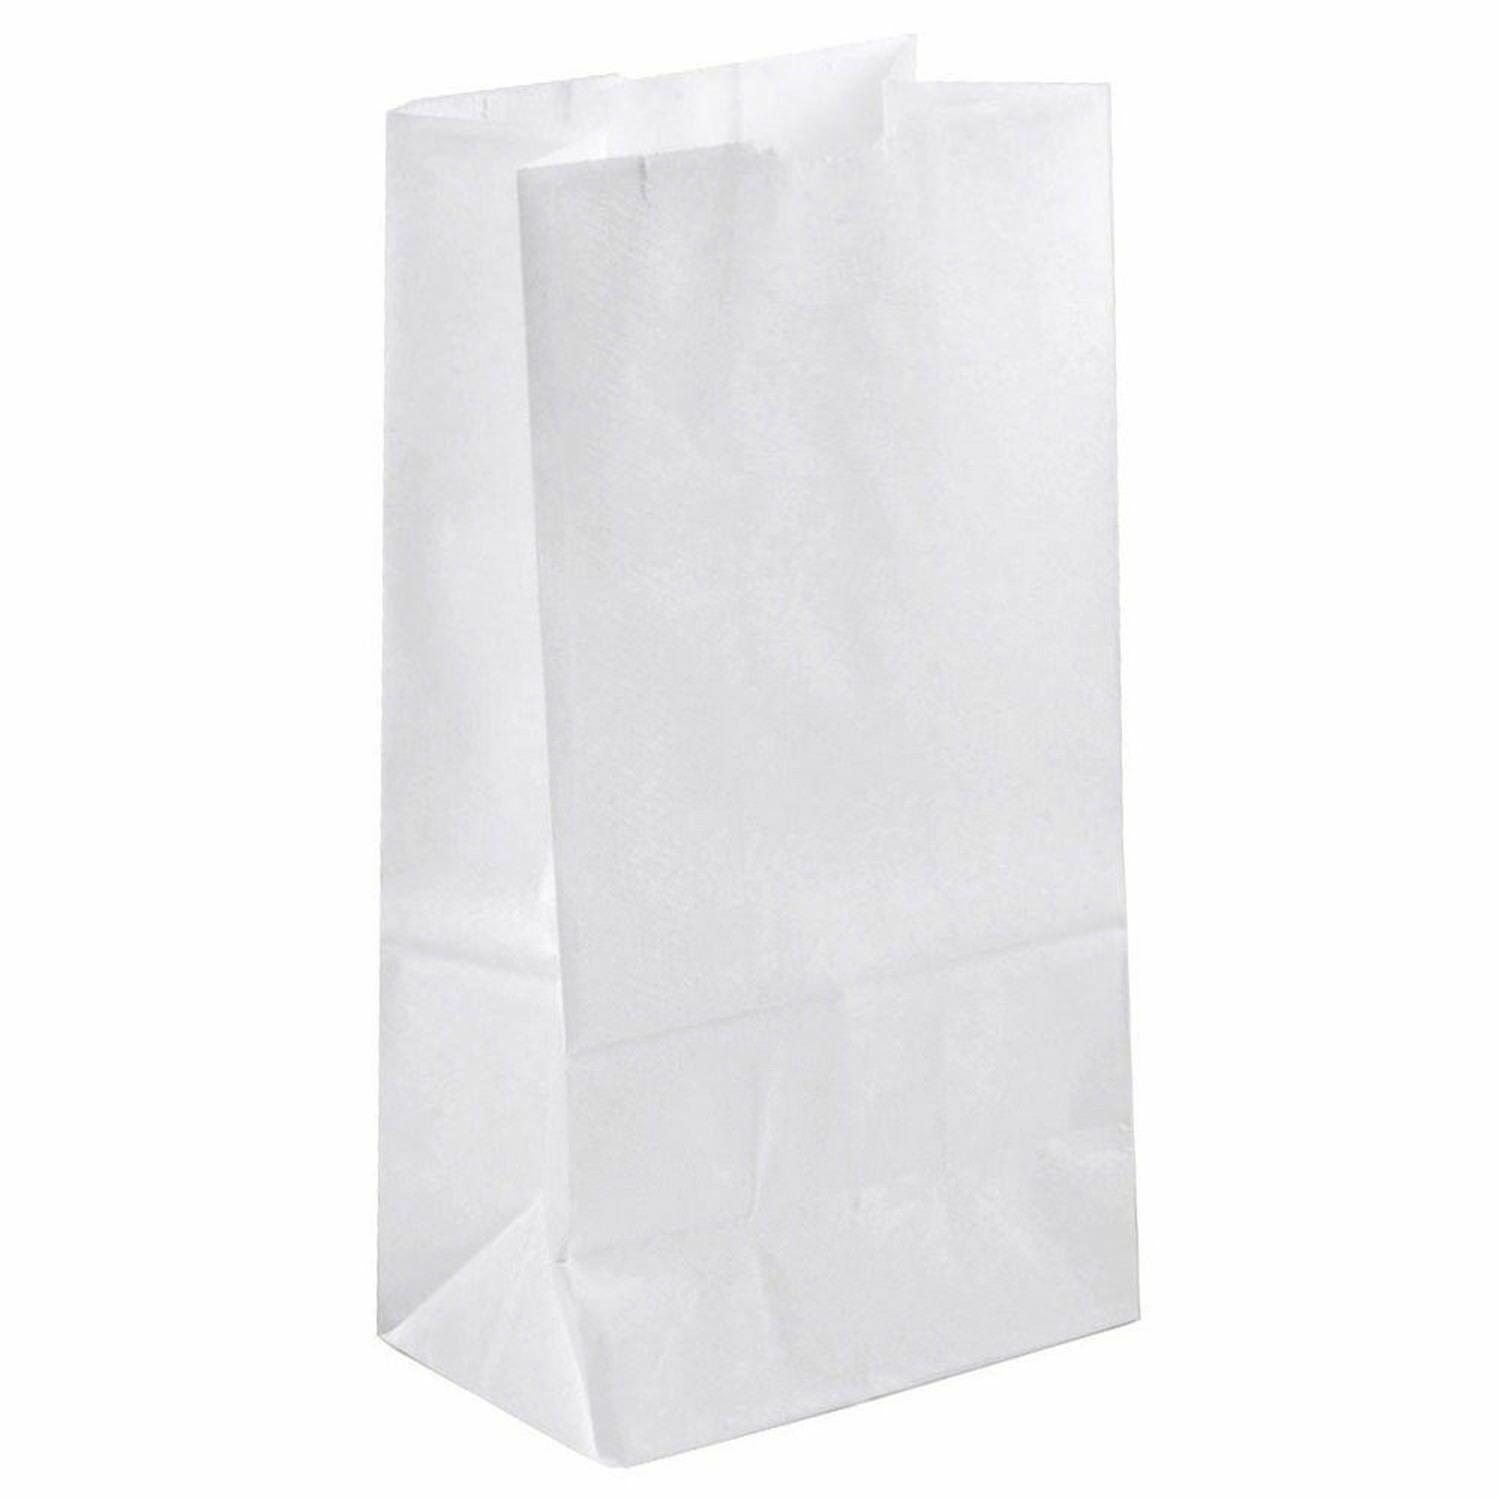 Grocery Bag 1# White 500ct